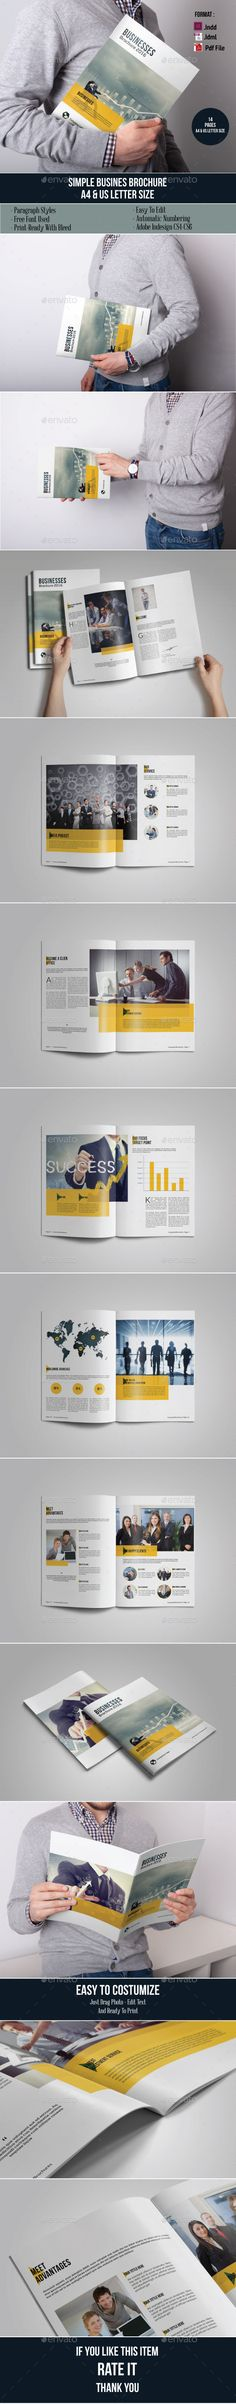 Simple Business Brochure Template #design Download: http://graphicriver.net/item/simple-business-brochure/11814850?ref=ksioks